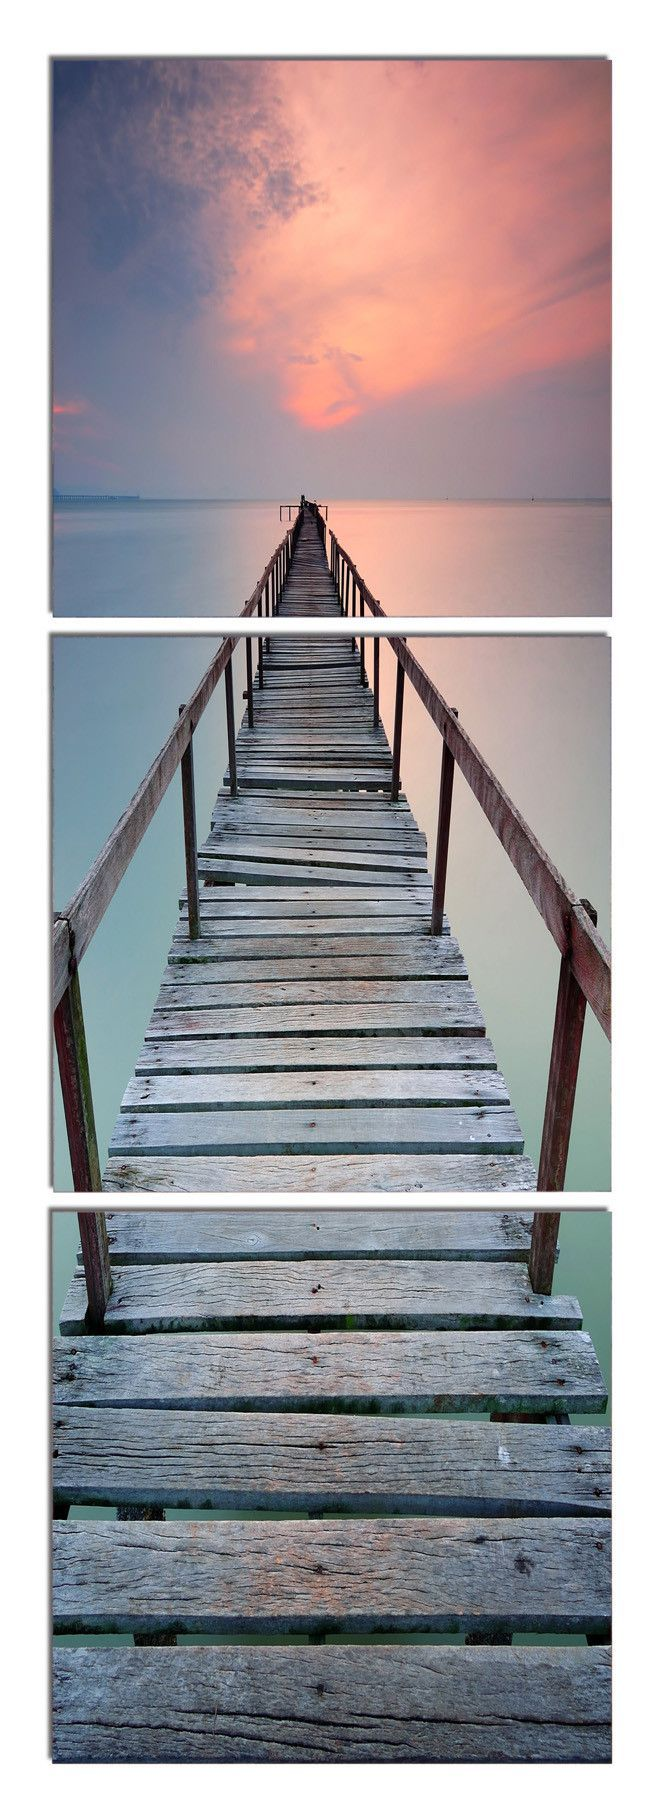 Every step is a risk when venturing down an old jetty. Grab the rail, but you never know. Is it worthwhile, to catch a better glimpse of the sunset? $220 Available in 3 sizes. Elementem Photography, triptych, home decor, photo prints on wood, jetty, rickety, boat, boating, yachting, sunset, beach, ocean, sea